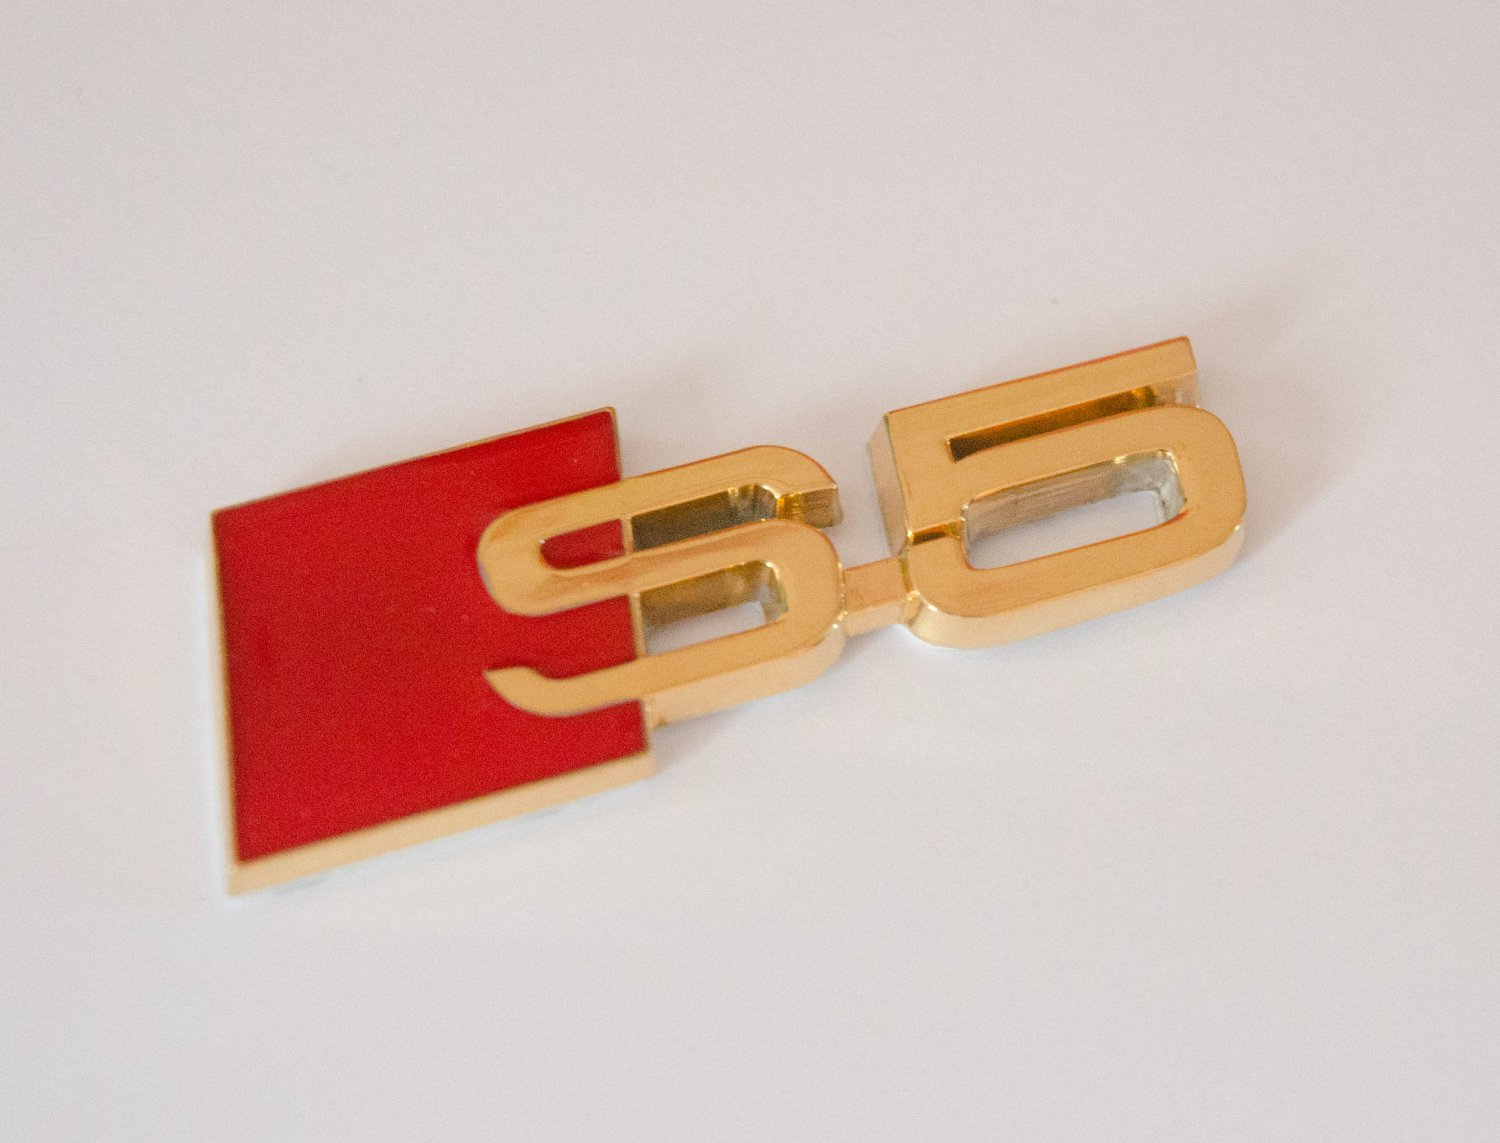 AUDI S5 24K Gold Plated Metal 3D Badge Emblem / Sticker